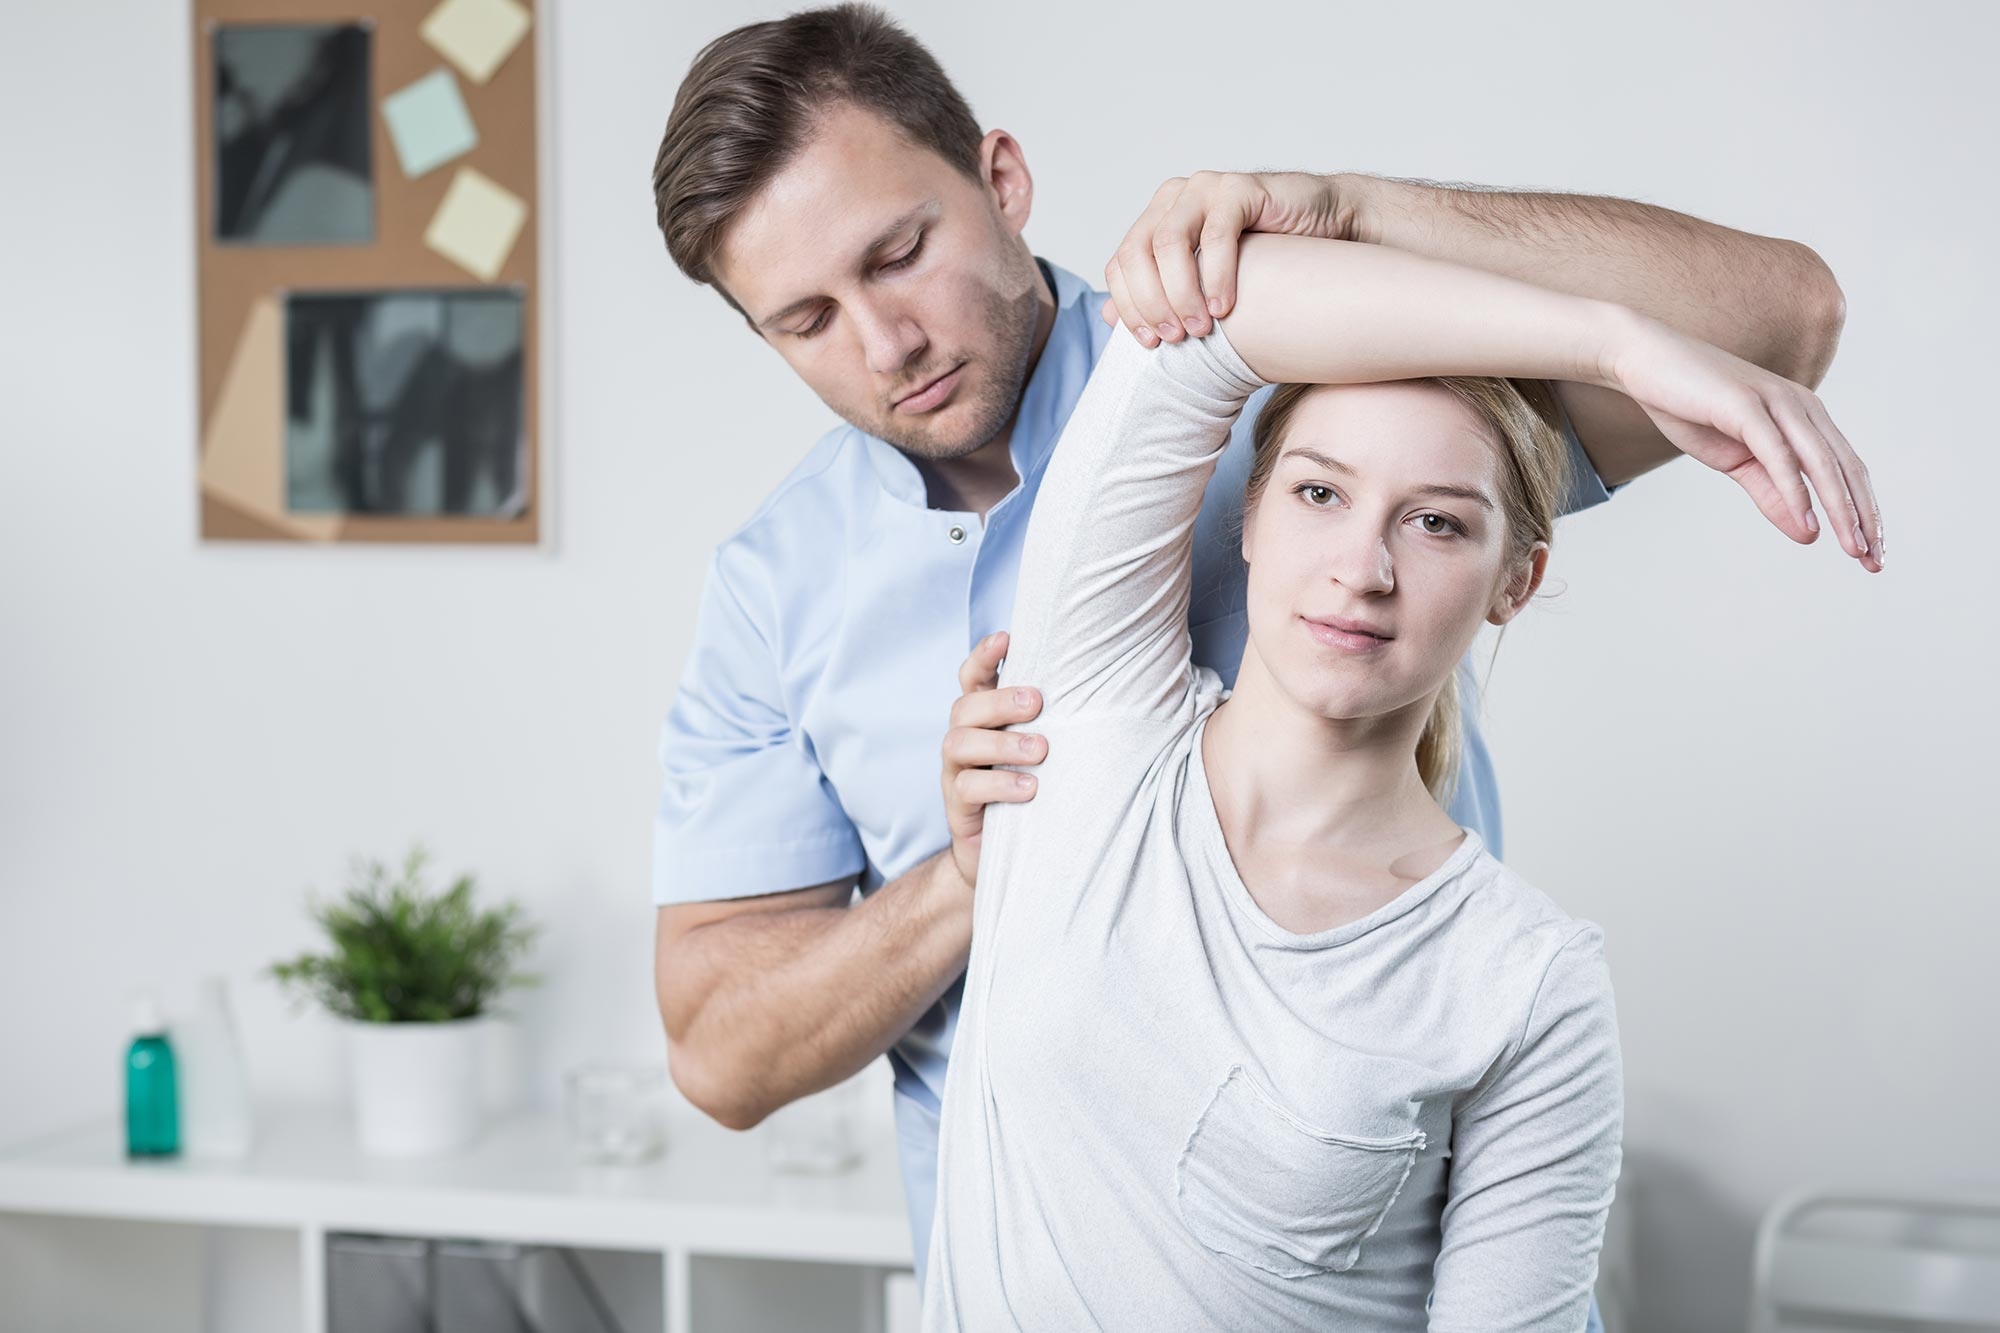 Is Physical Therapy Really Effective for Chronic Pain?